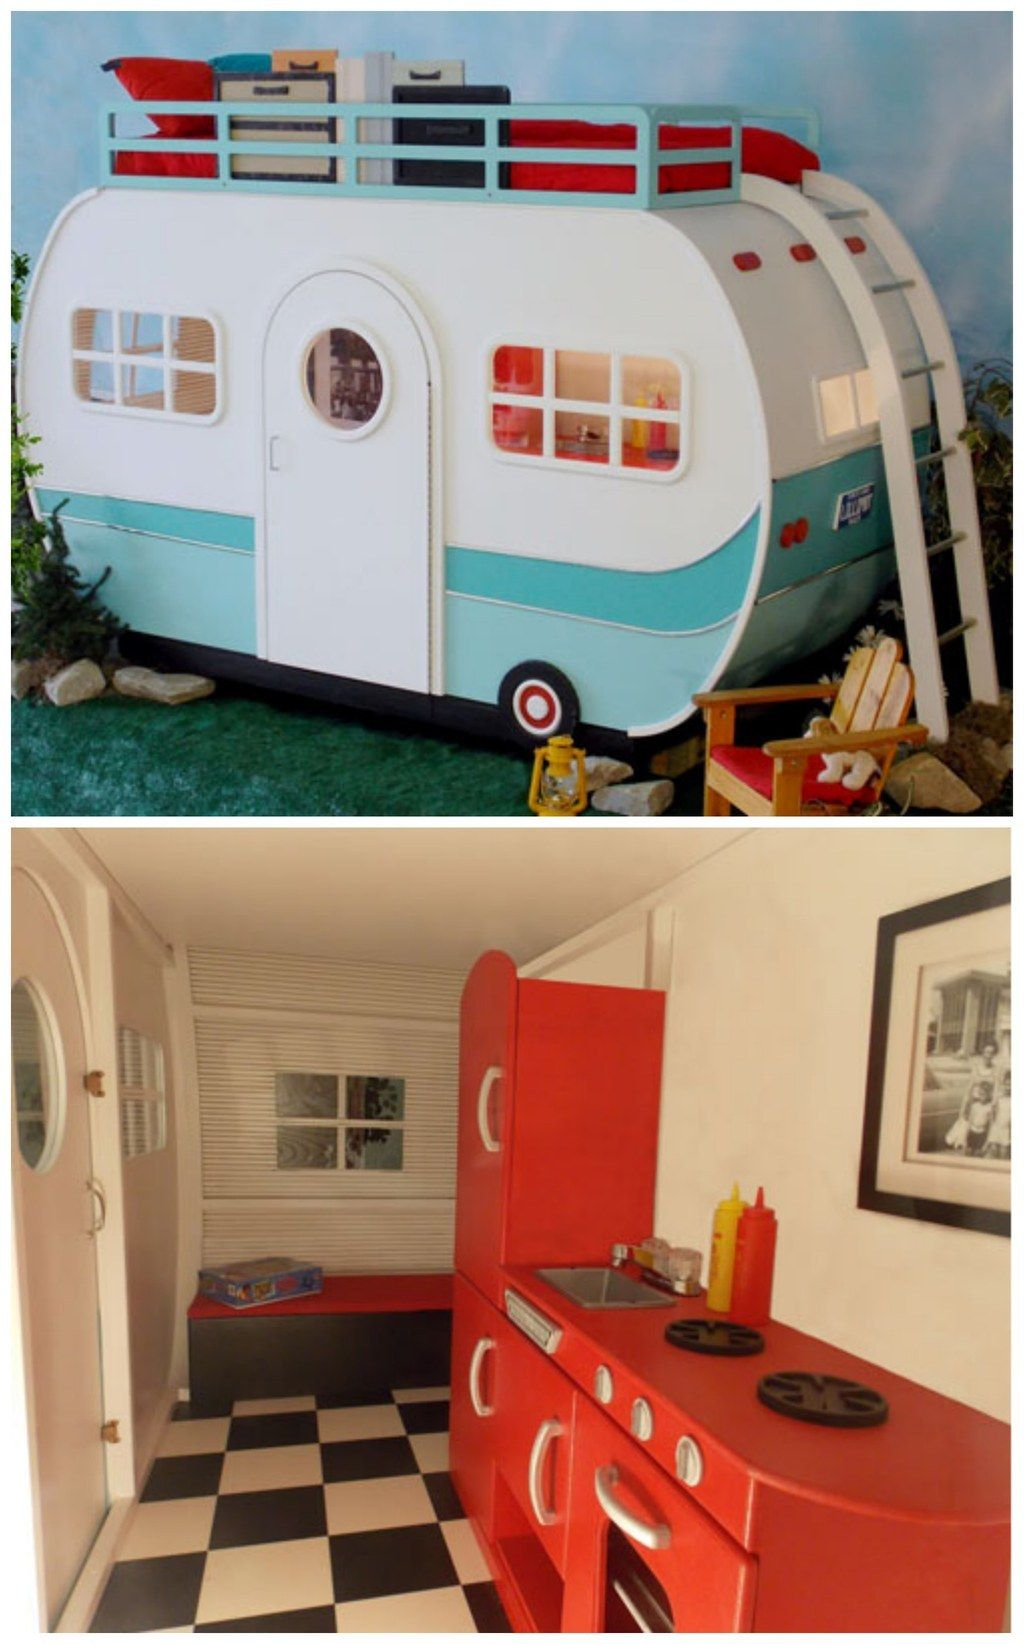 Beds for boys 23 beds that will make you wish you were a kid again XJJZEZF